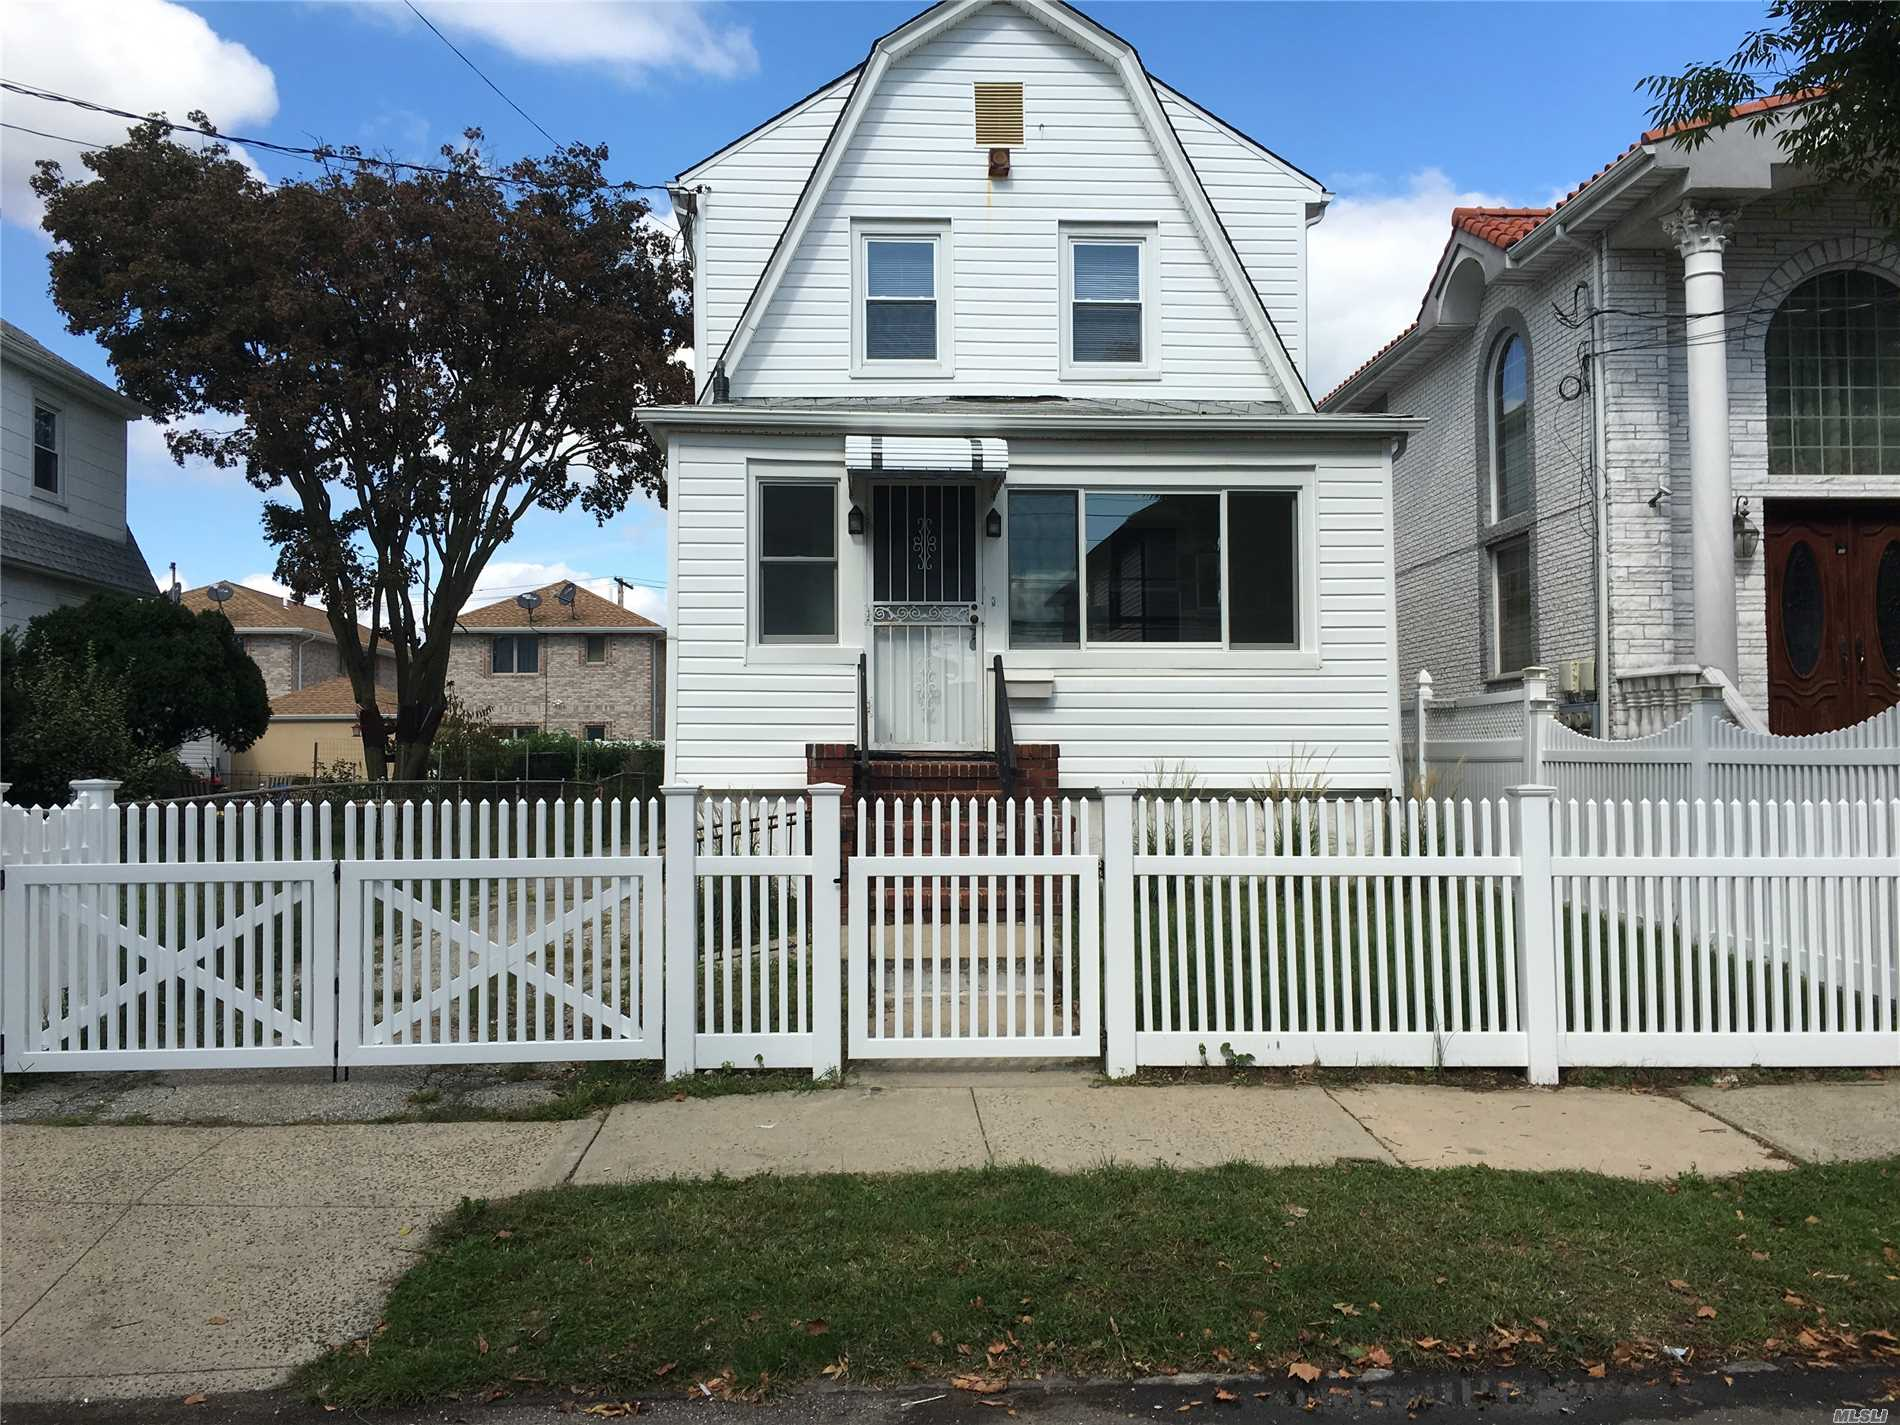 Updated Spacious Three Bedroom House For Rent In Whitestone Features Living Room, Dining Room, Eat In Kitchen, 1.5 Baths + Backyard And Driveway Included. Hardwood Floors Throughout. Close To Shops And Public Transportation. A Must See!!